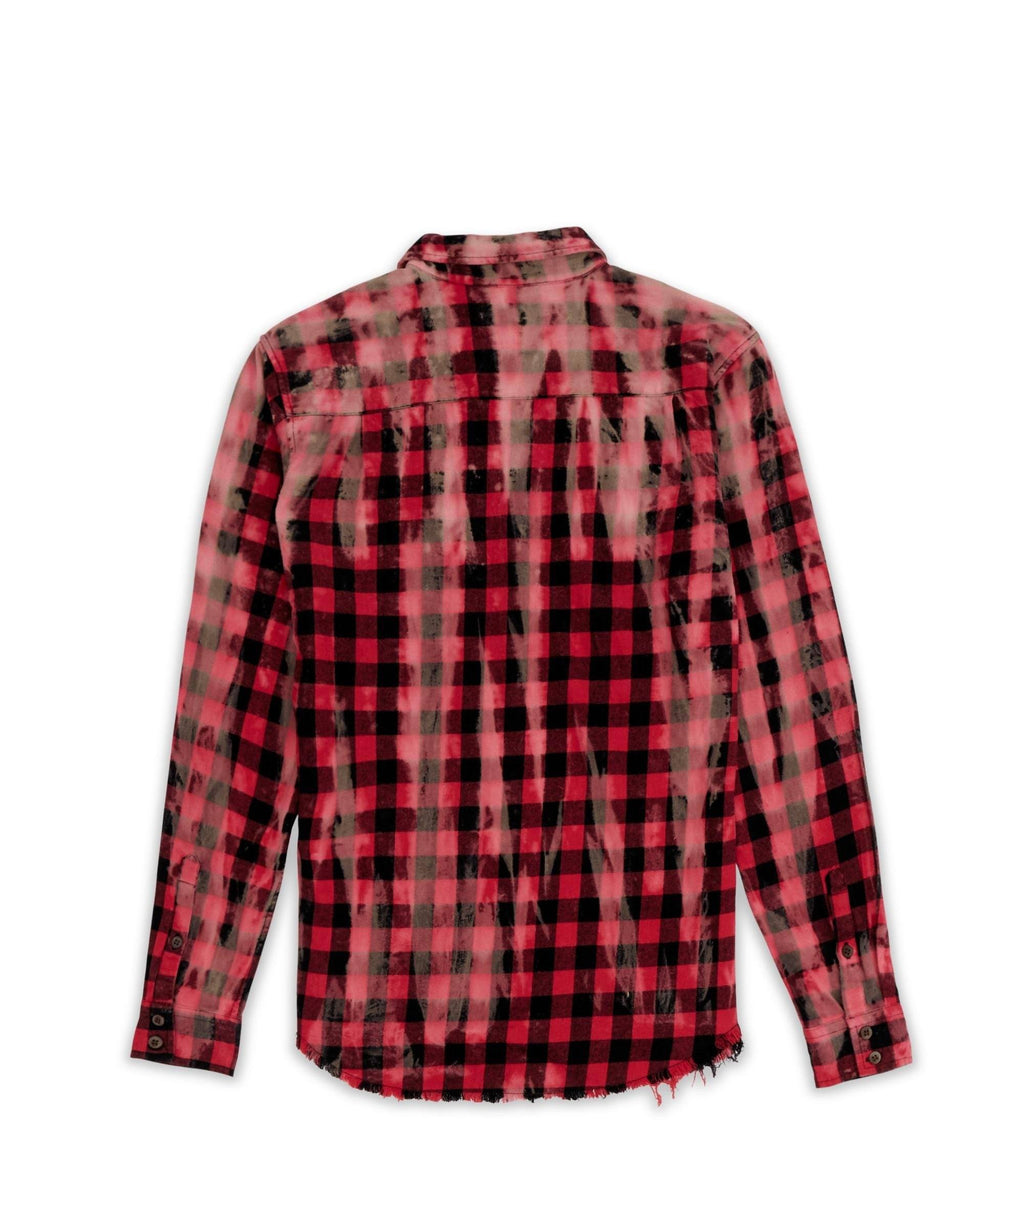 ASPHALT FLANNEL - RED/BLACK